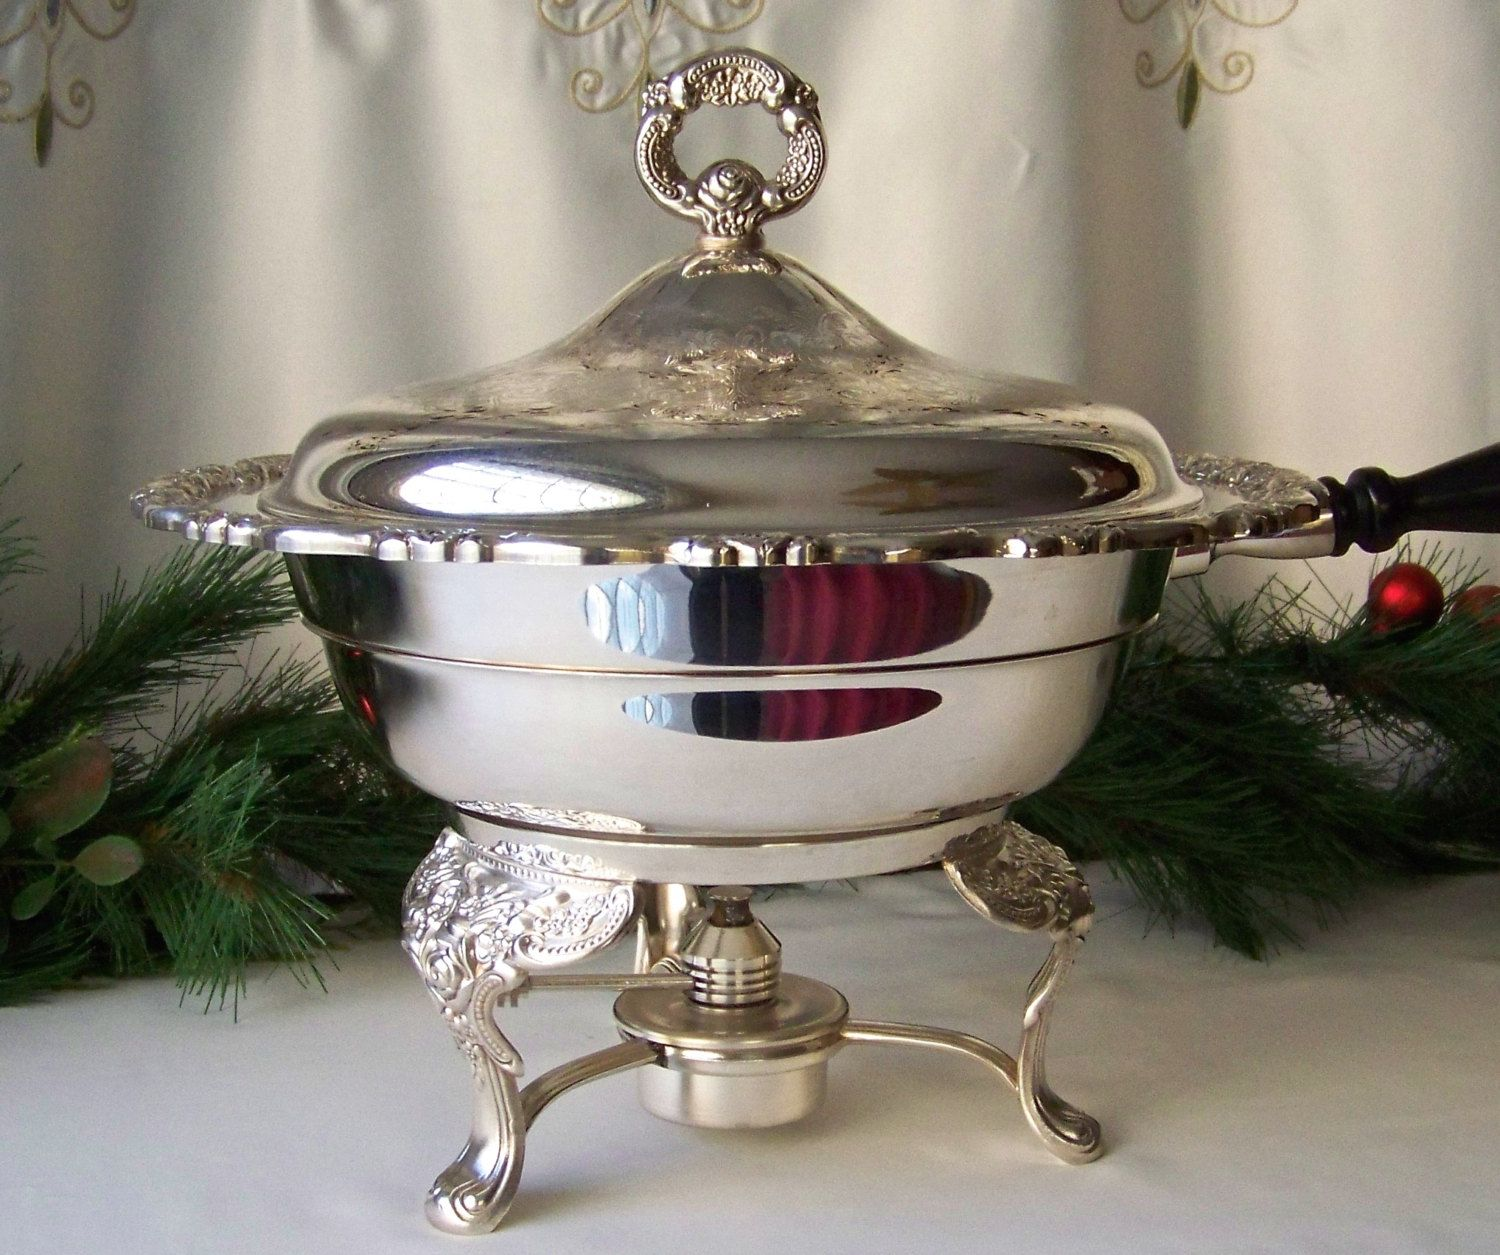 Vintage Silver Plate Chafing Dish By Oneida Silver Ornate